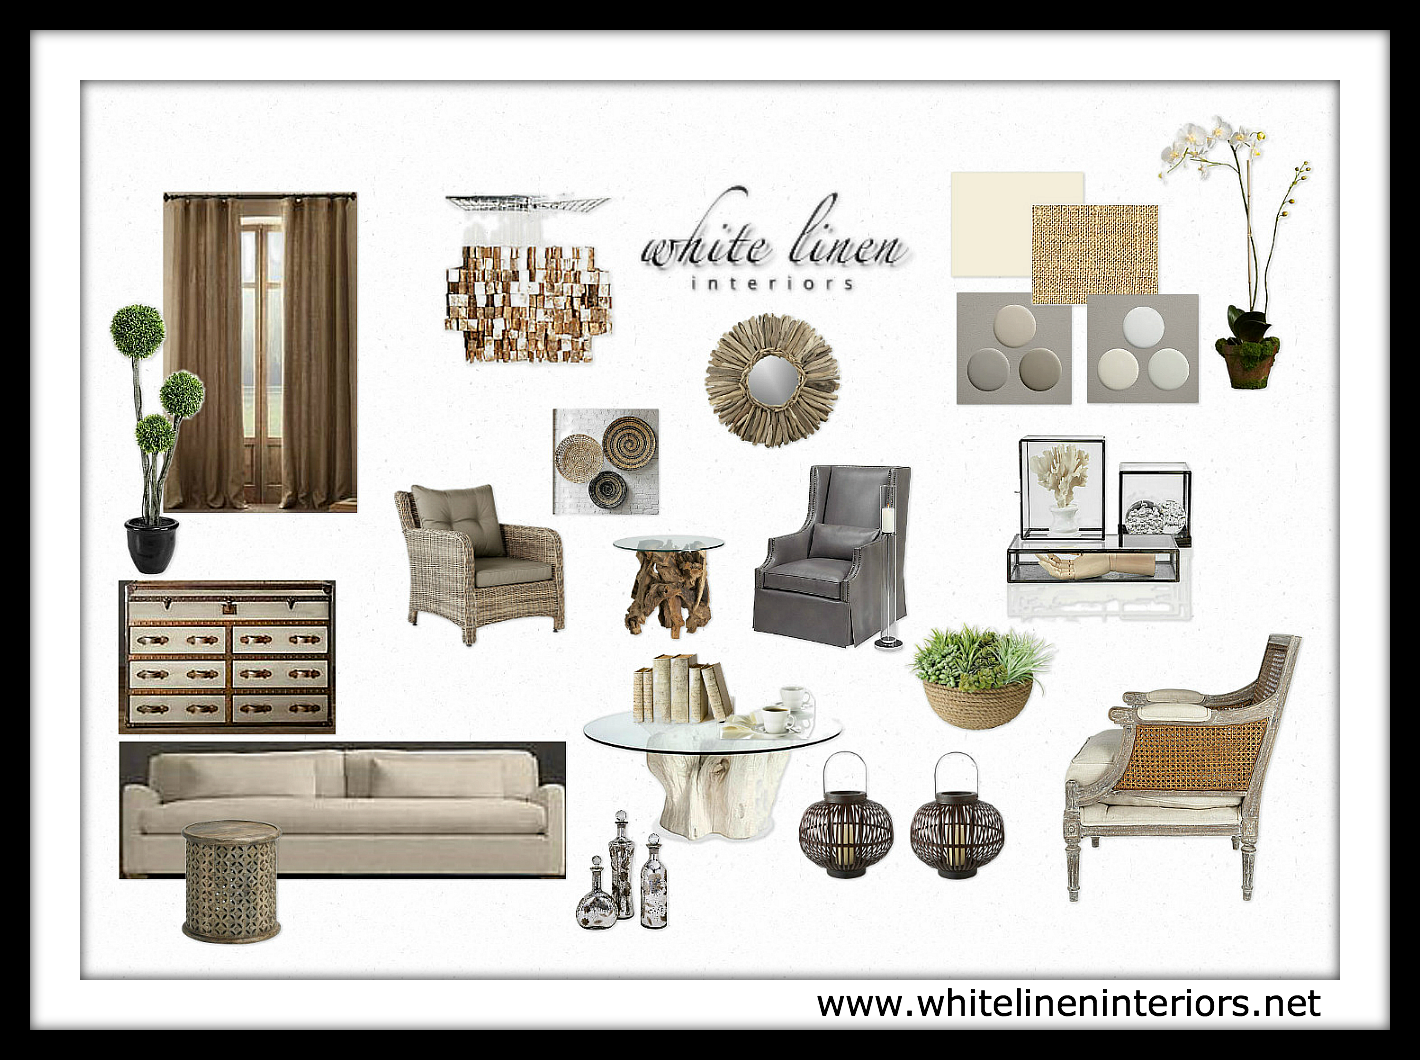 White linen interiors offers affordable online e design for Best home decor boards on pinterest